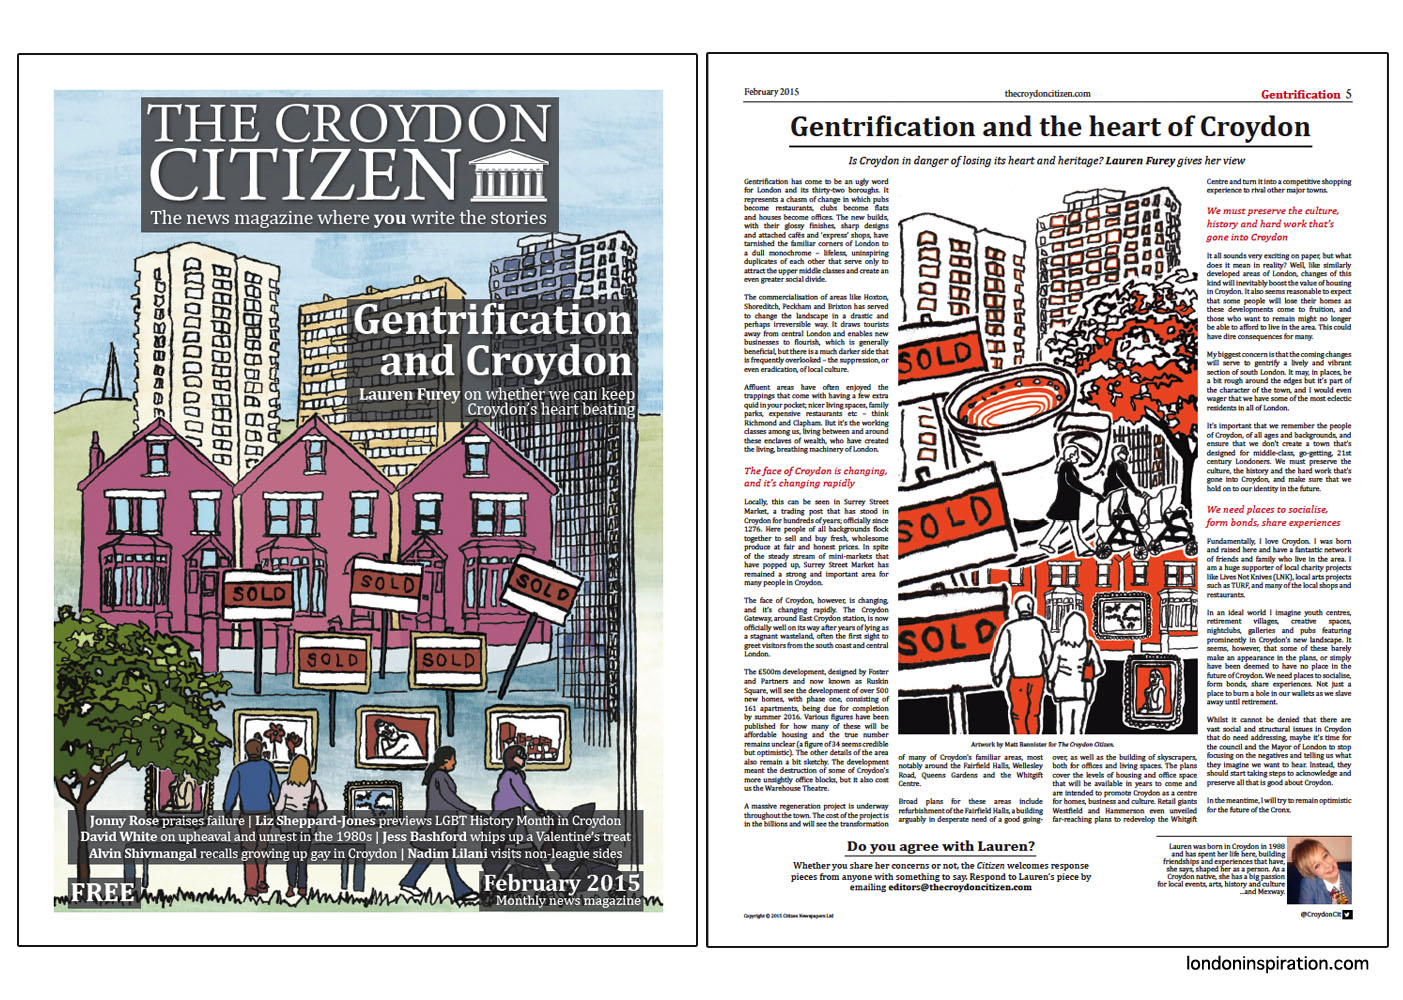 Illustrations of Croydon